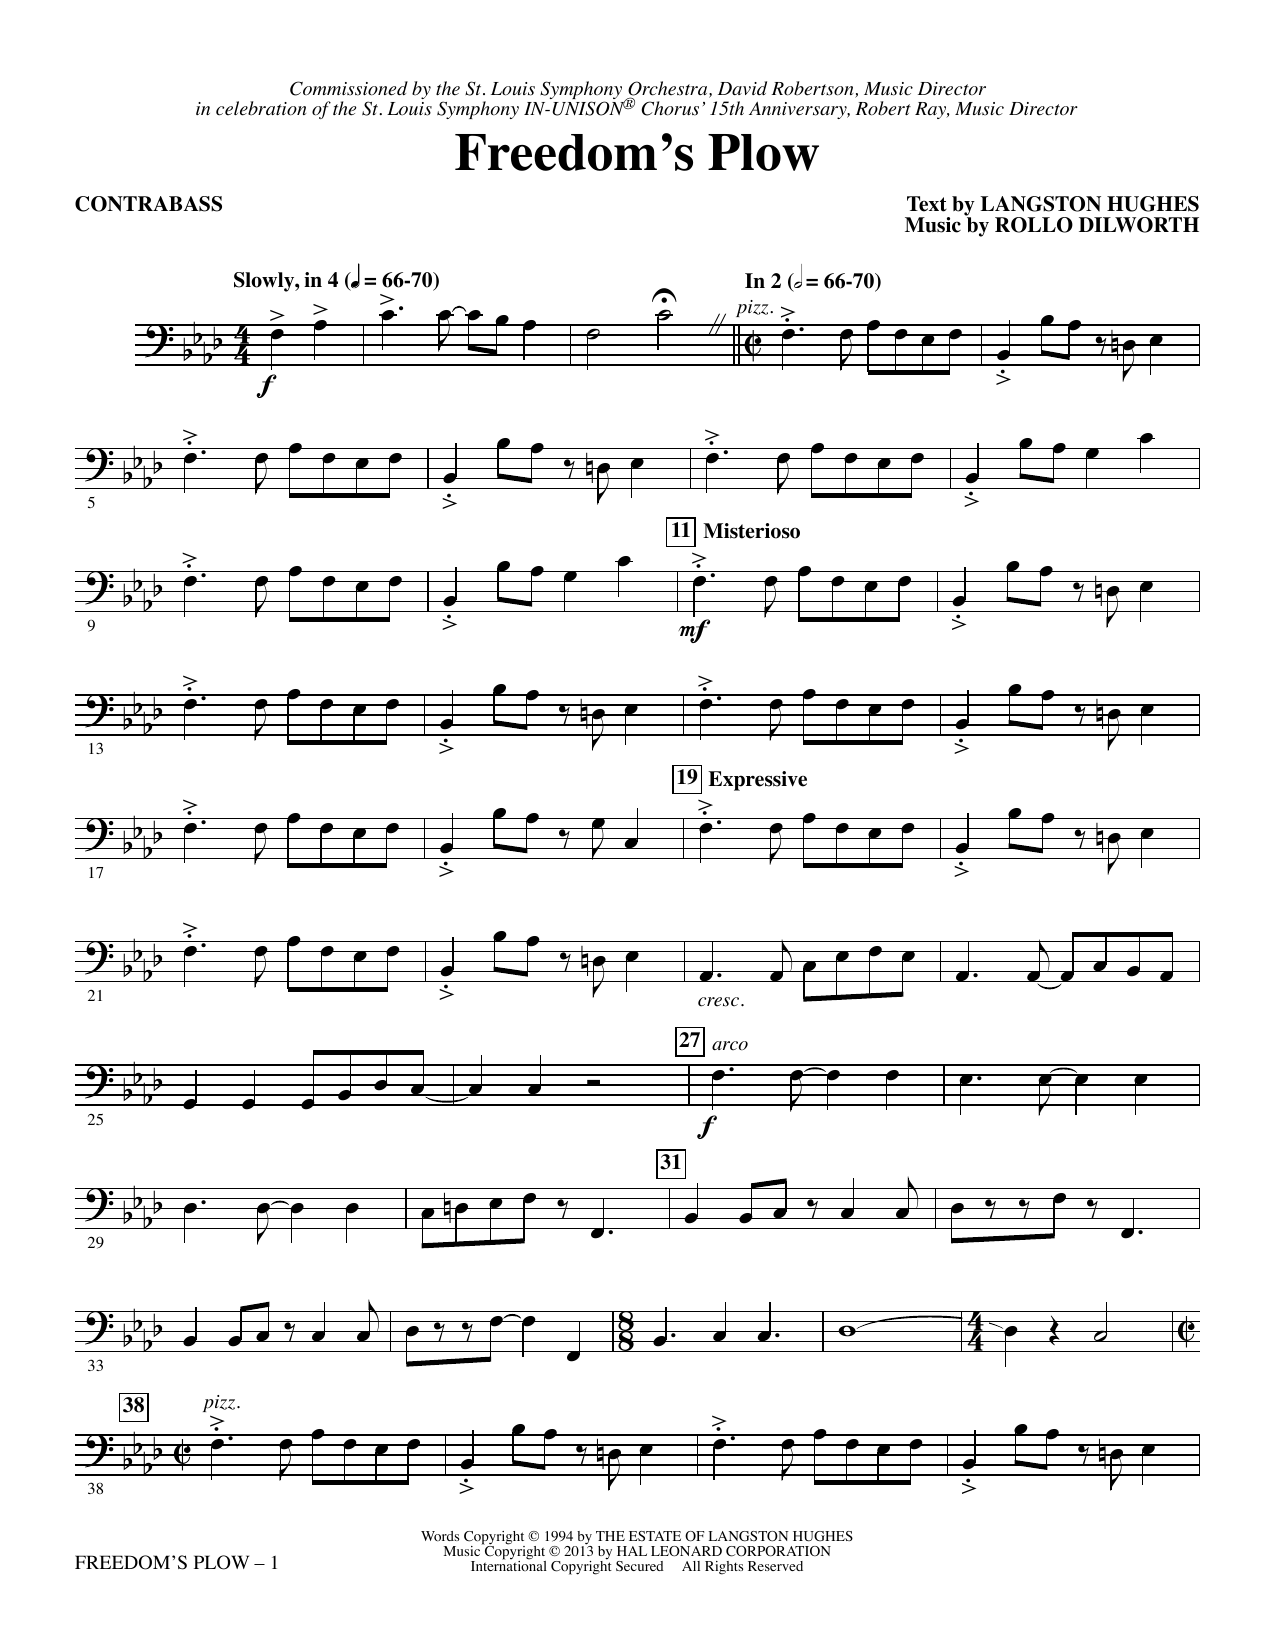 Rollo Dilworth Freedom's Plow - Contrabass sheet music notes and chords. Download Printable PDF.